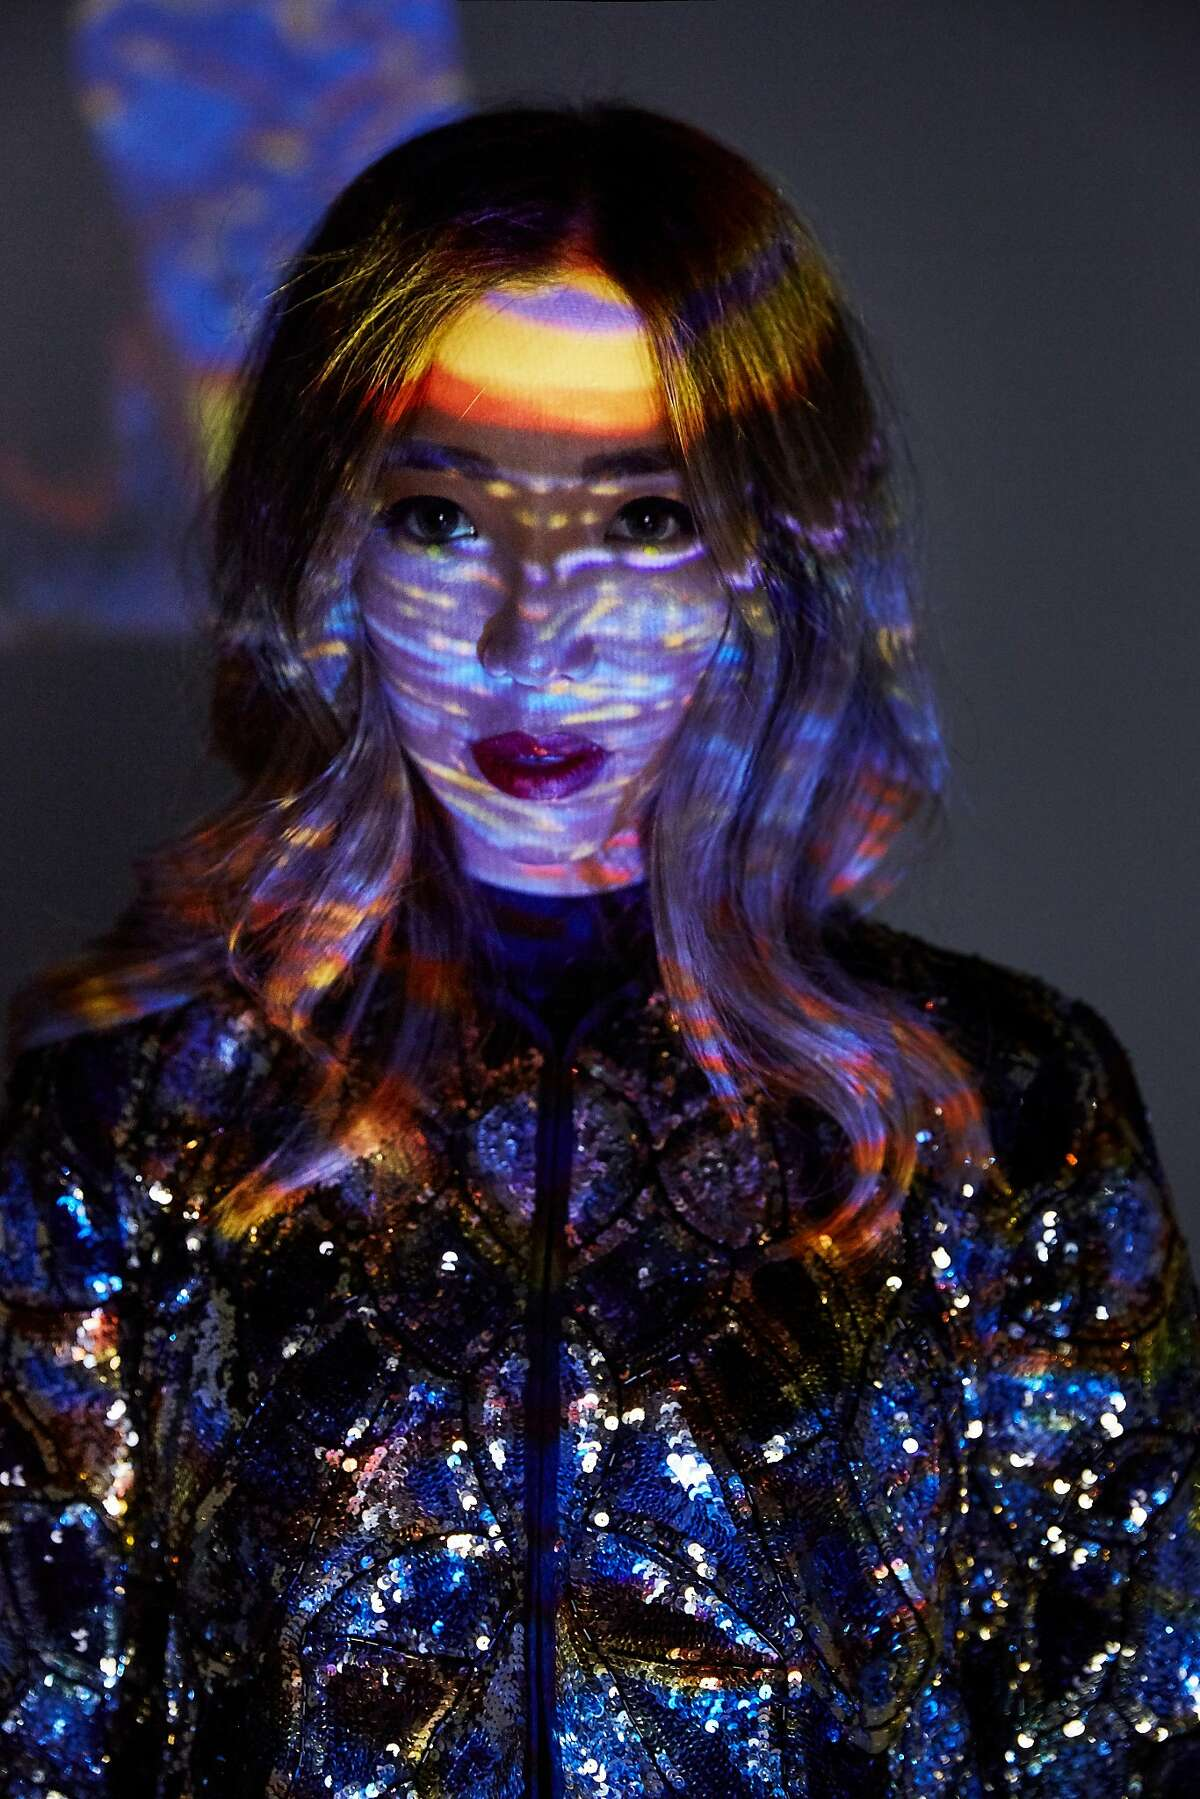 Tokimonsta is scheduled to perform Sept. 20 at the Mezzanine.